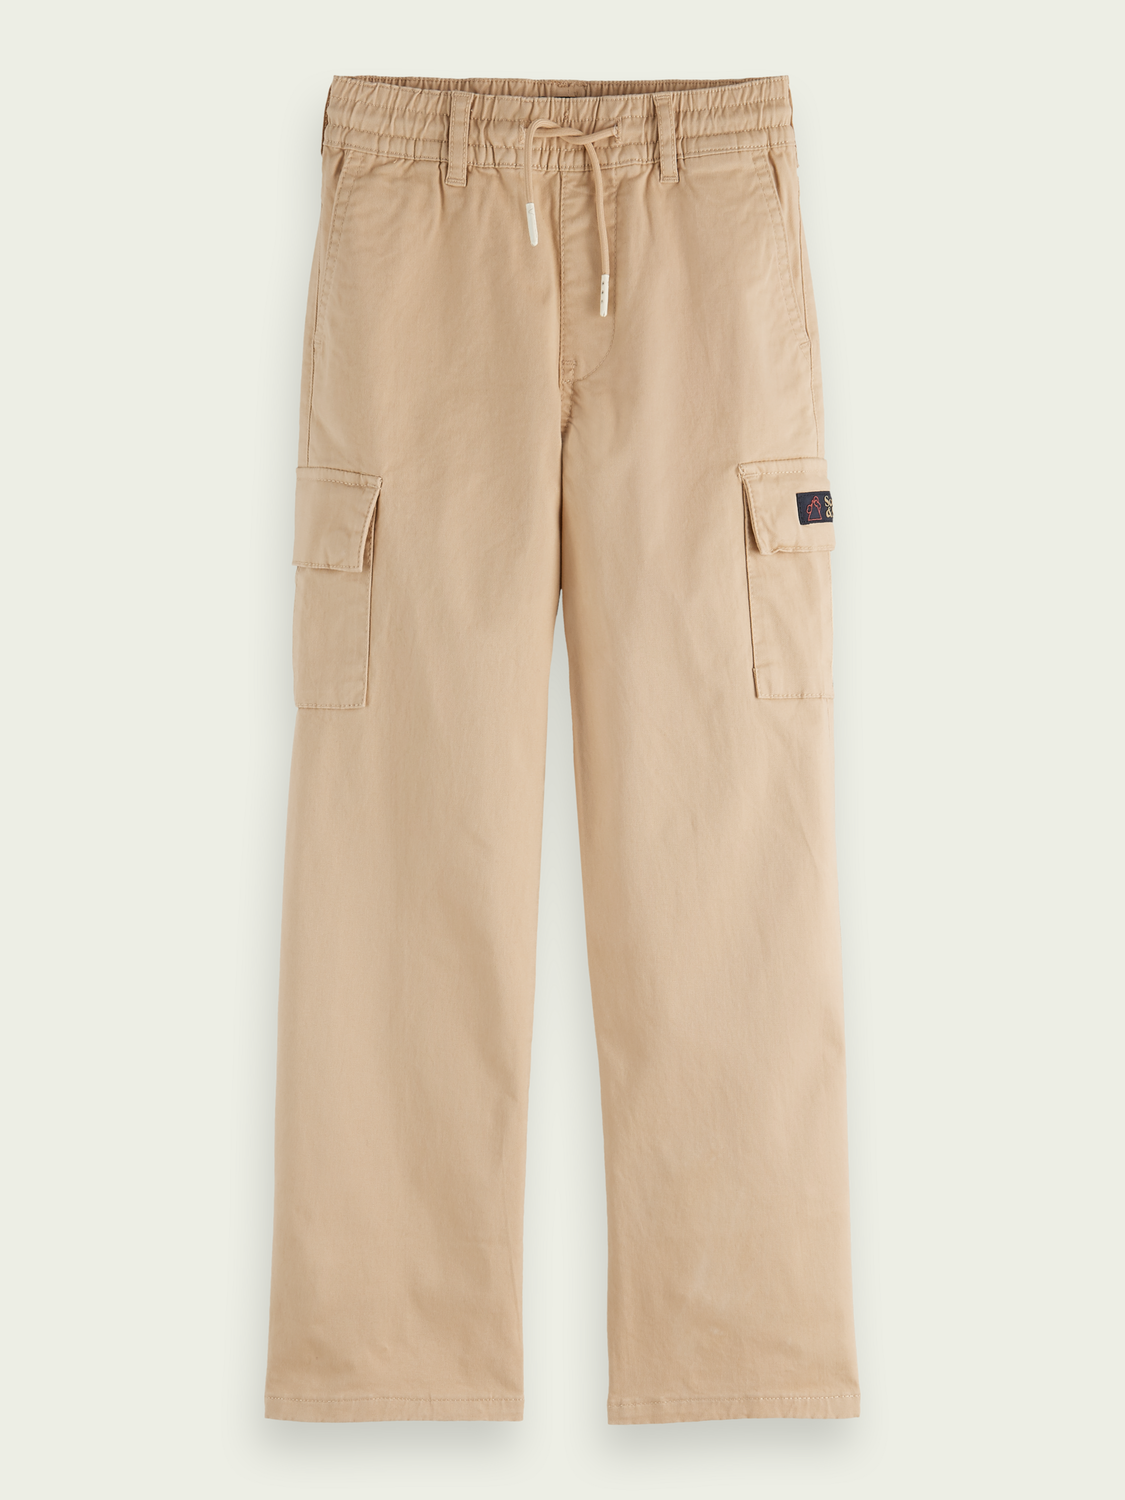 Hidden category Loose-fit cargo pants